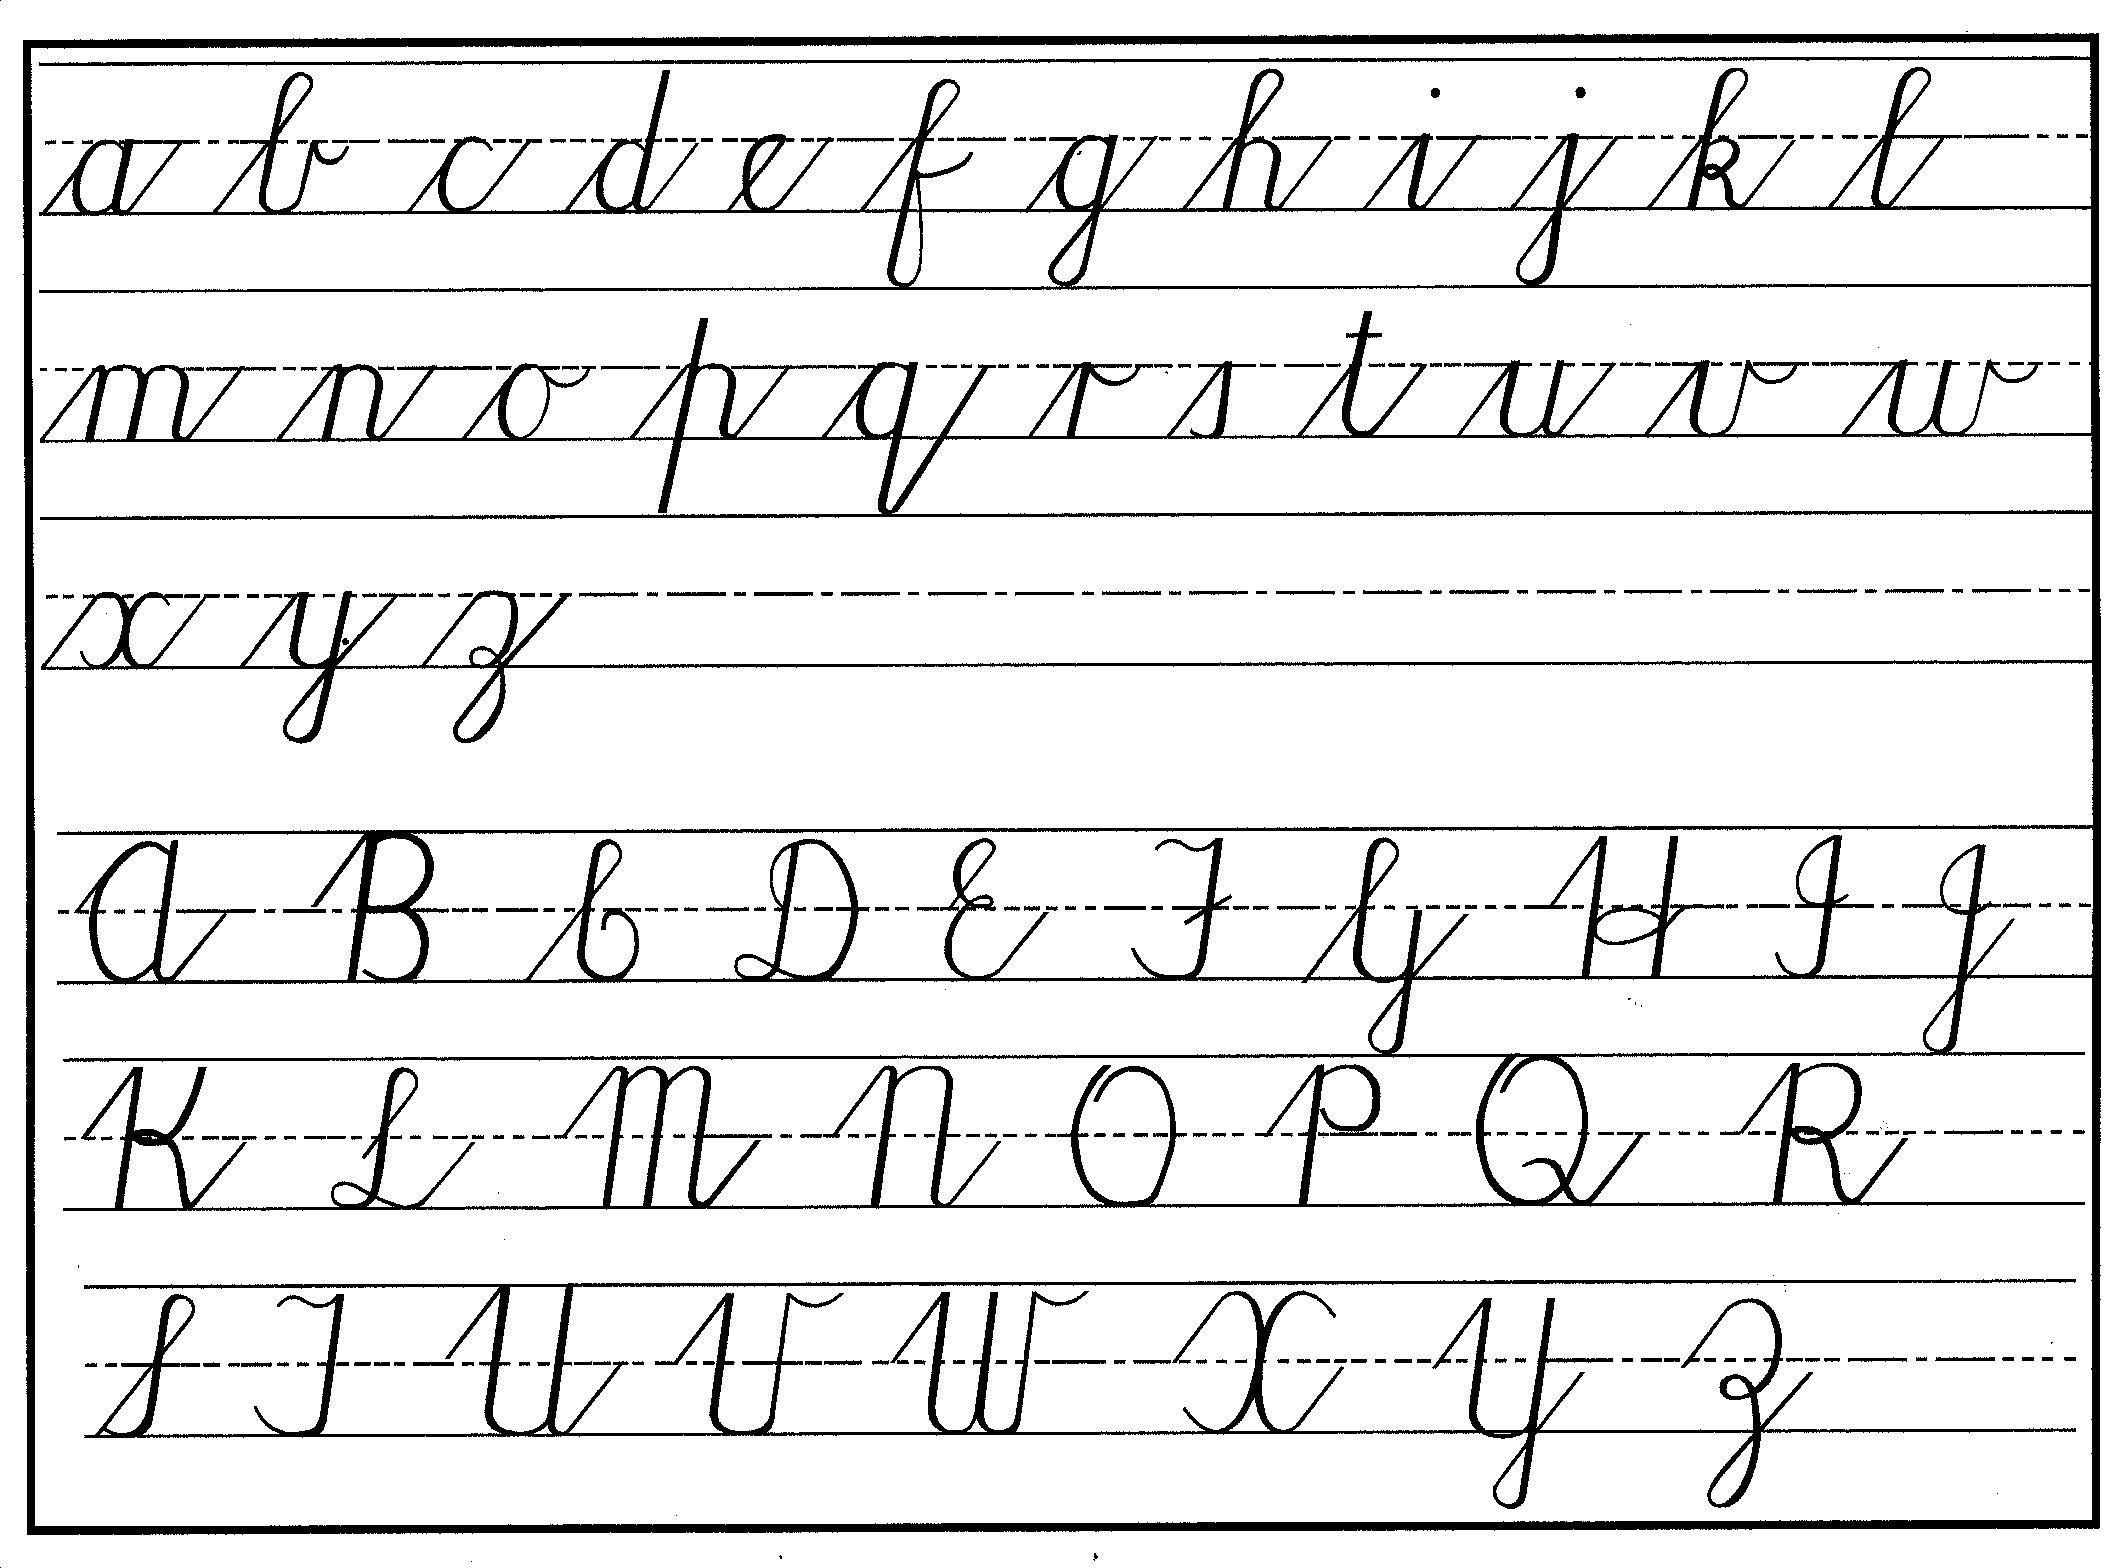 Printable Cursive Alphabet Chart Cursive Handwriting Step by Step for Beginners